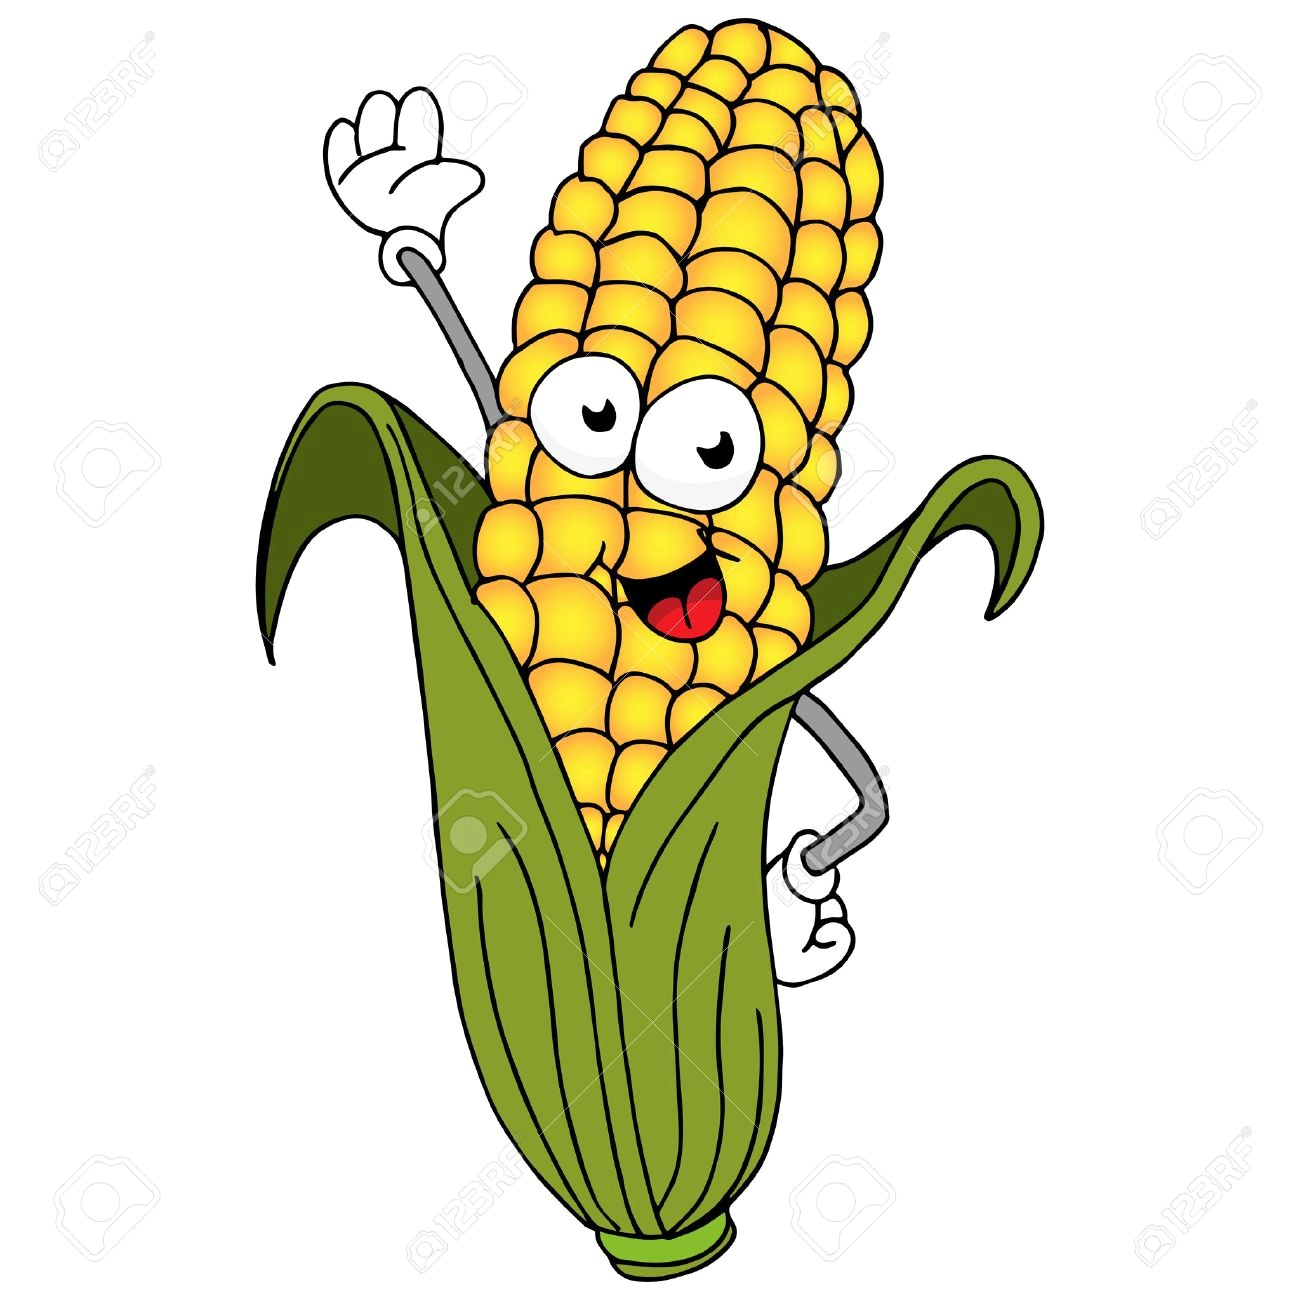 1300x1300 Ear Of Corn Drawing At Getdrawings Com Free For Personal Use